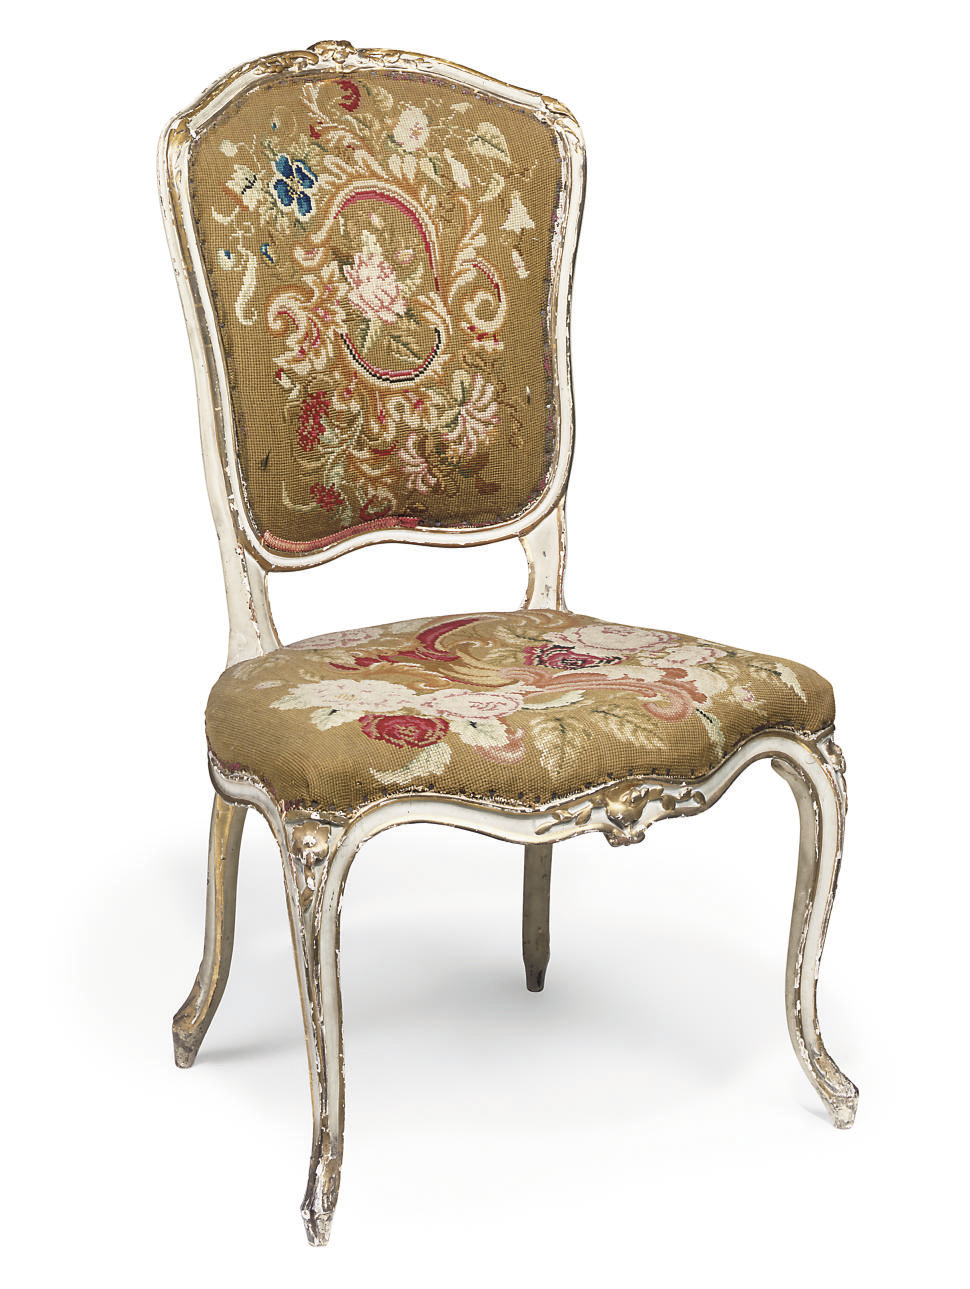 A LOUIS XV GREY PAINTED AND PARCEL-GILT CHAISE EN CABRIOLET